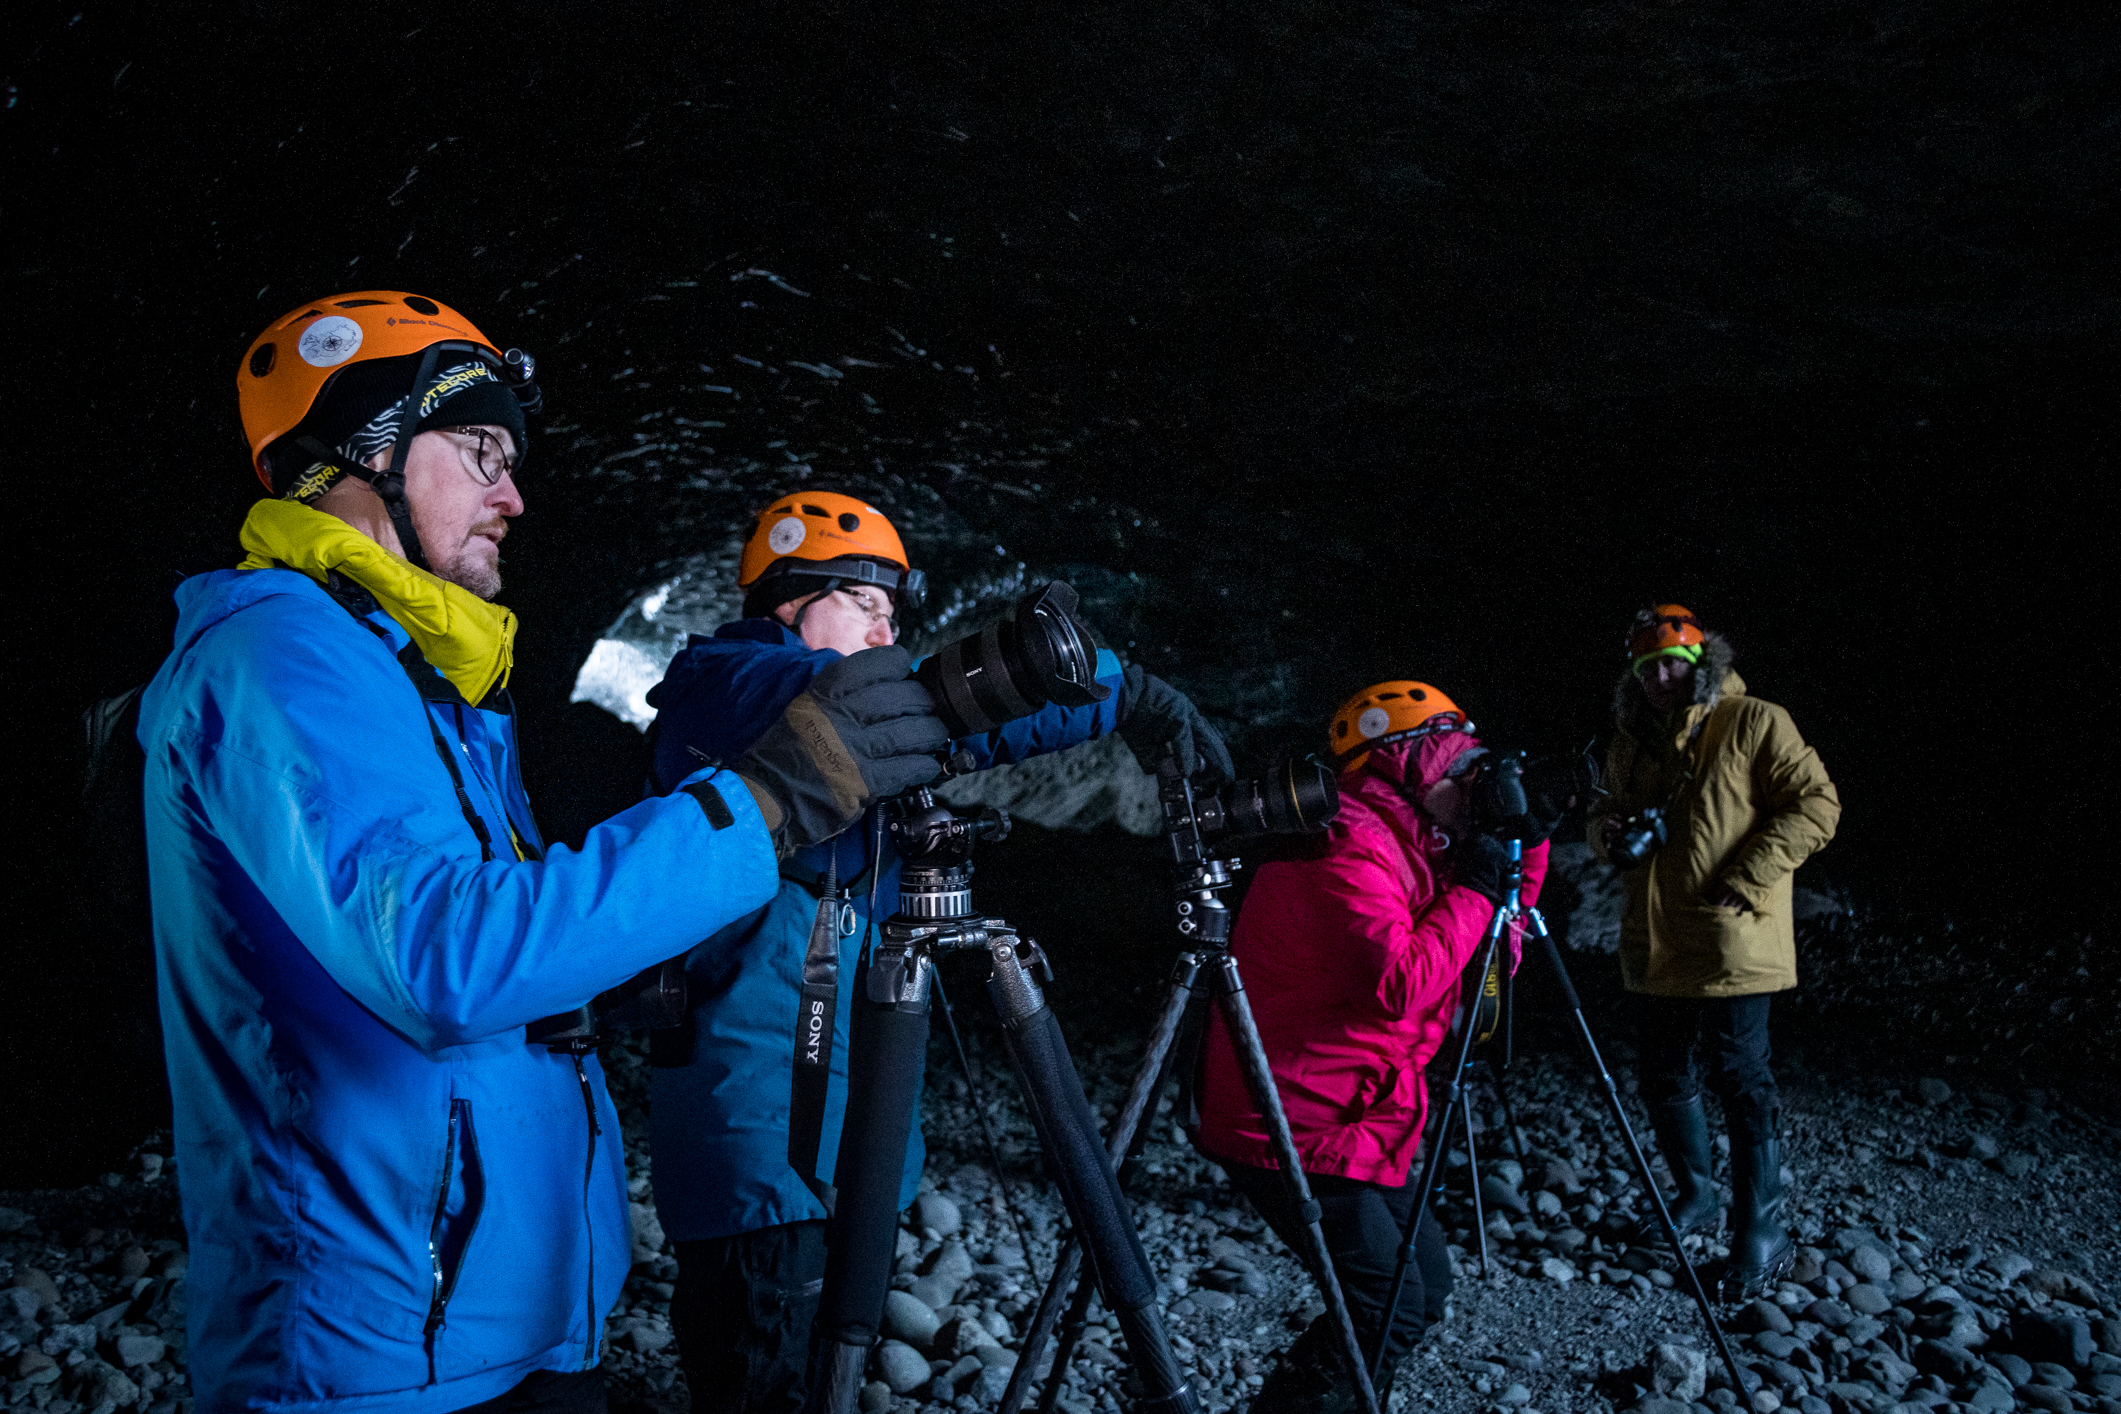 Páll Jökull shooting inside the cave together with the workshop participants.